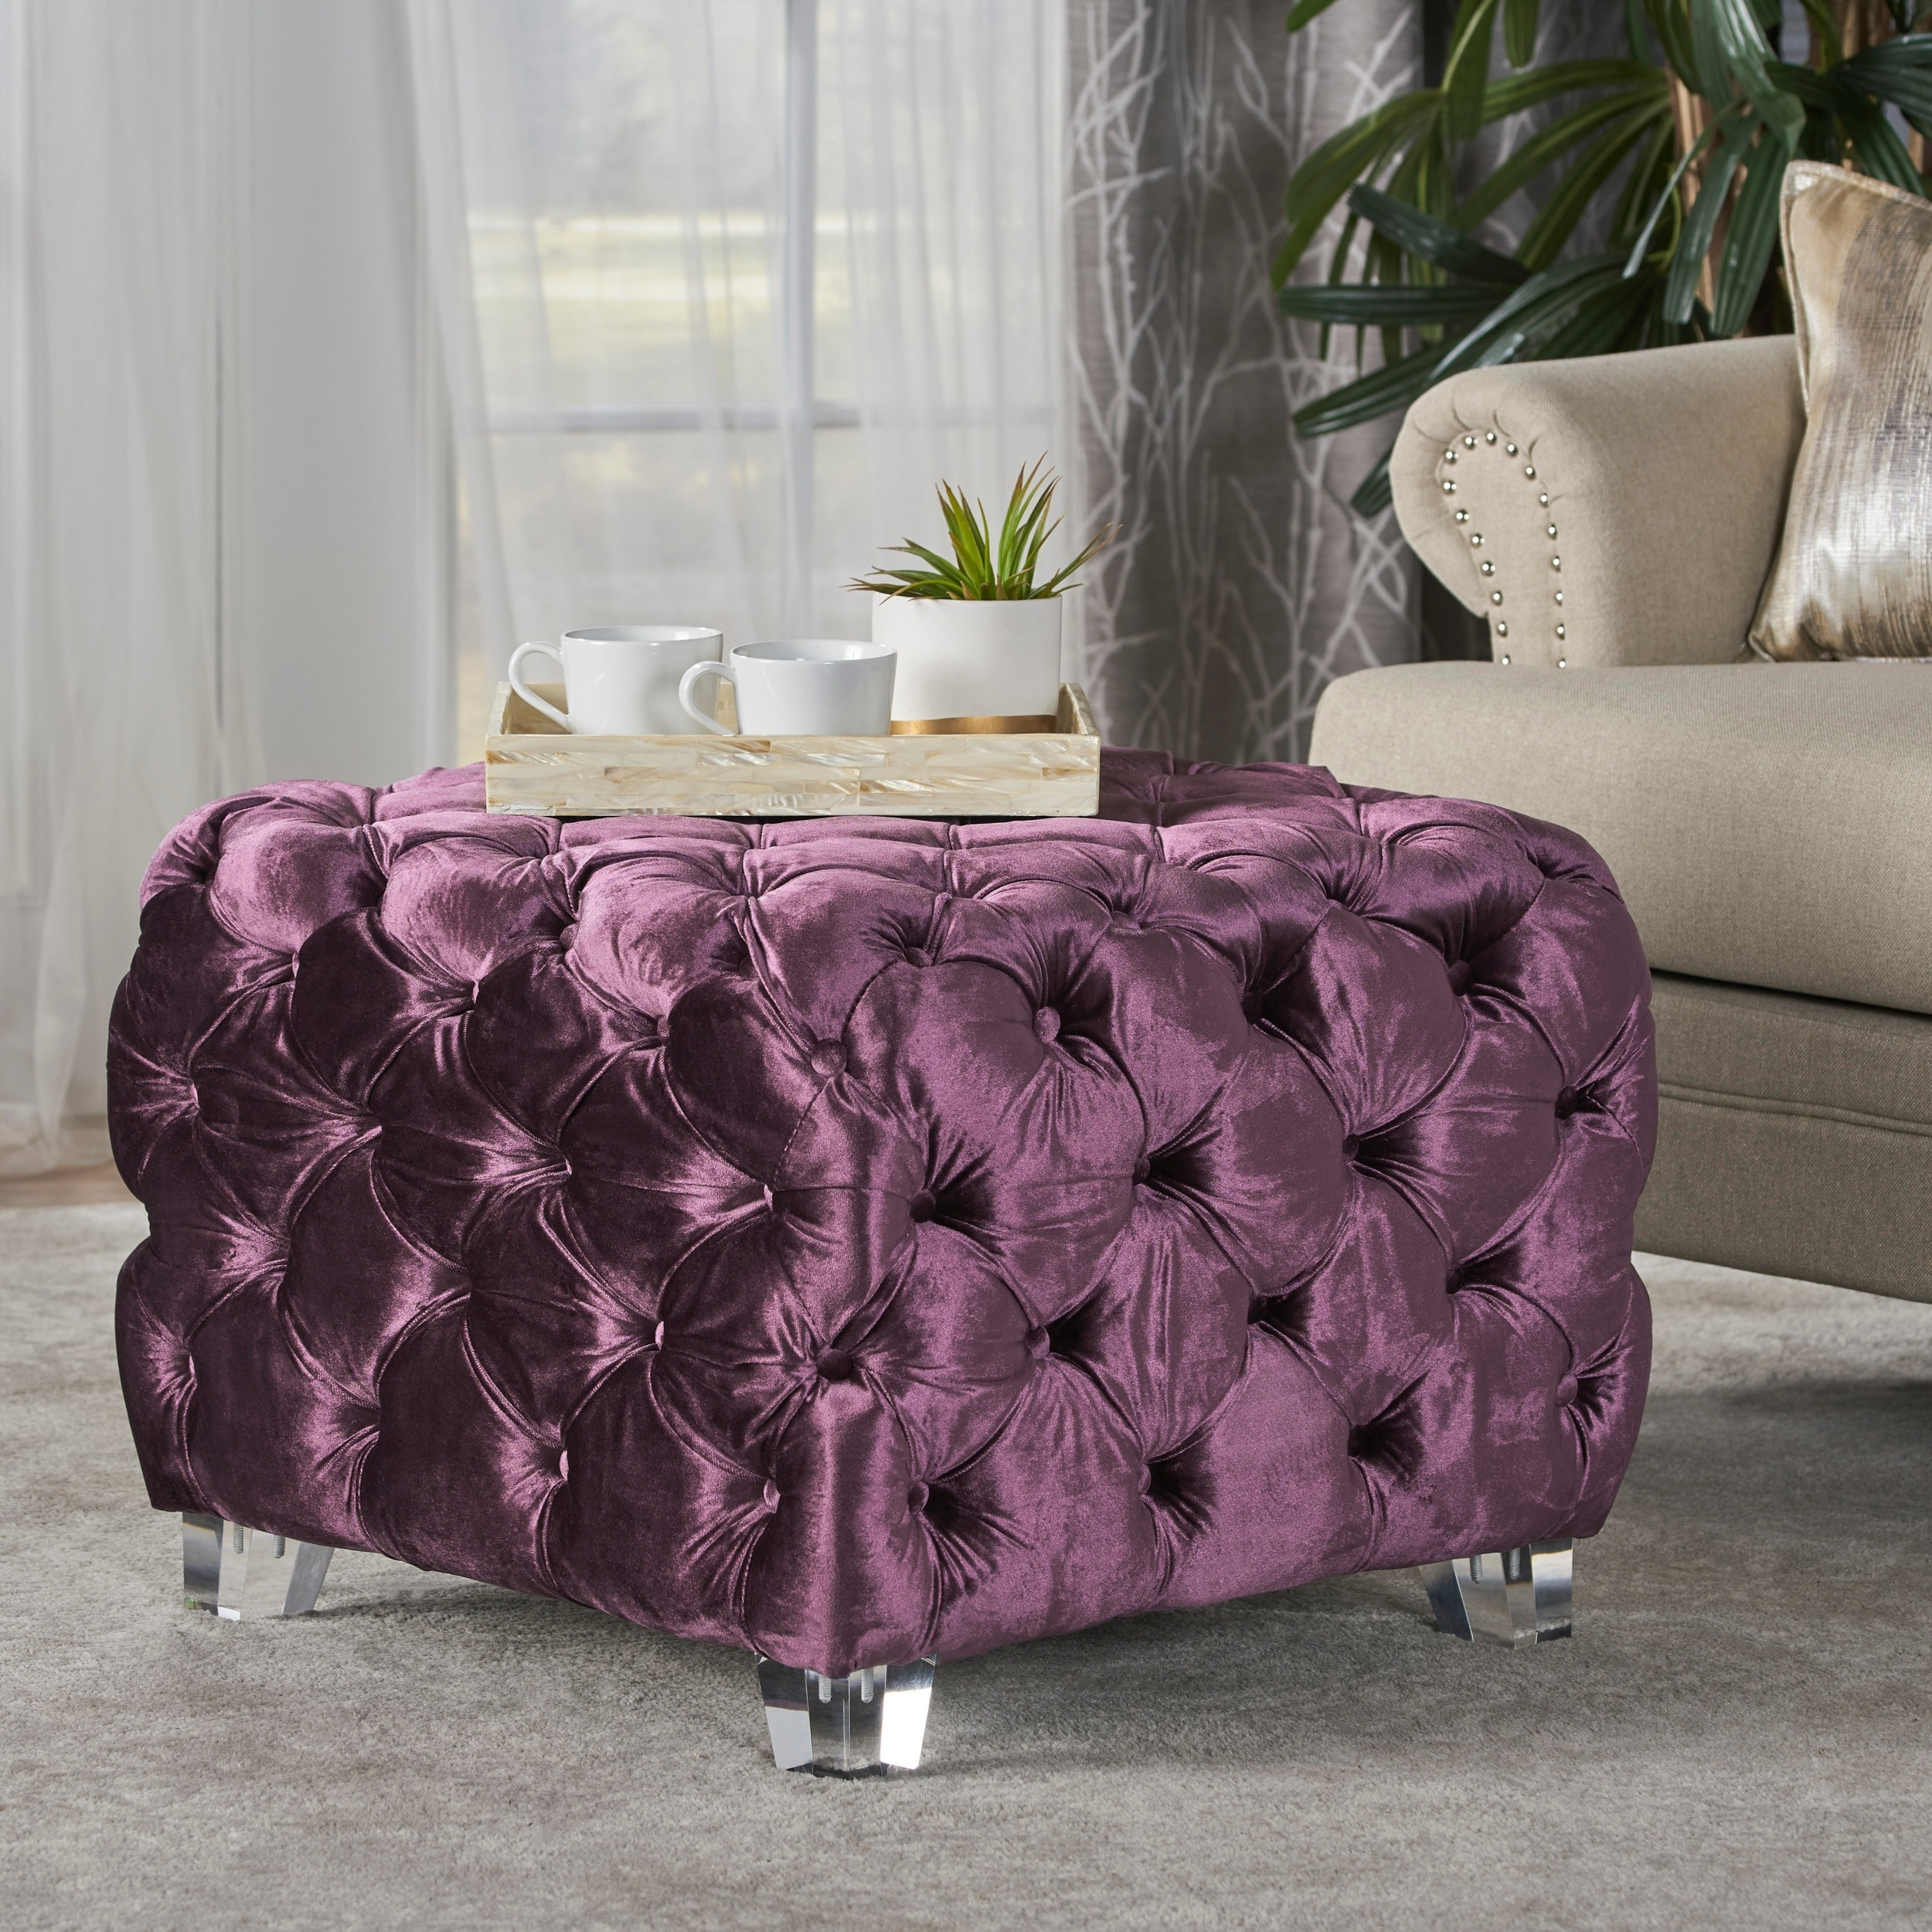 Shop Laszlo Tufted Velvet Square Ottoman Stool By Christopher Knight Home    On Sale   Free Shipping Today   Overstock.com   17801710